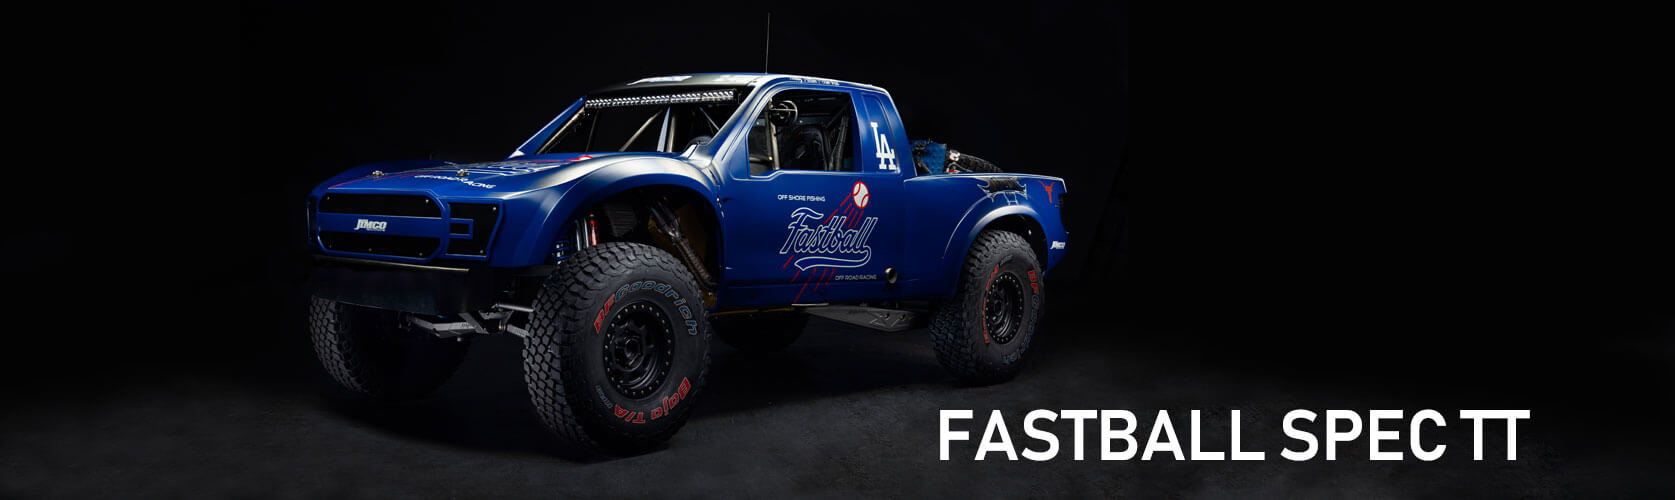 Fastball Racing Spec Trophy Truck